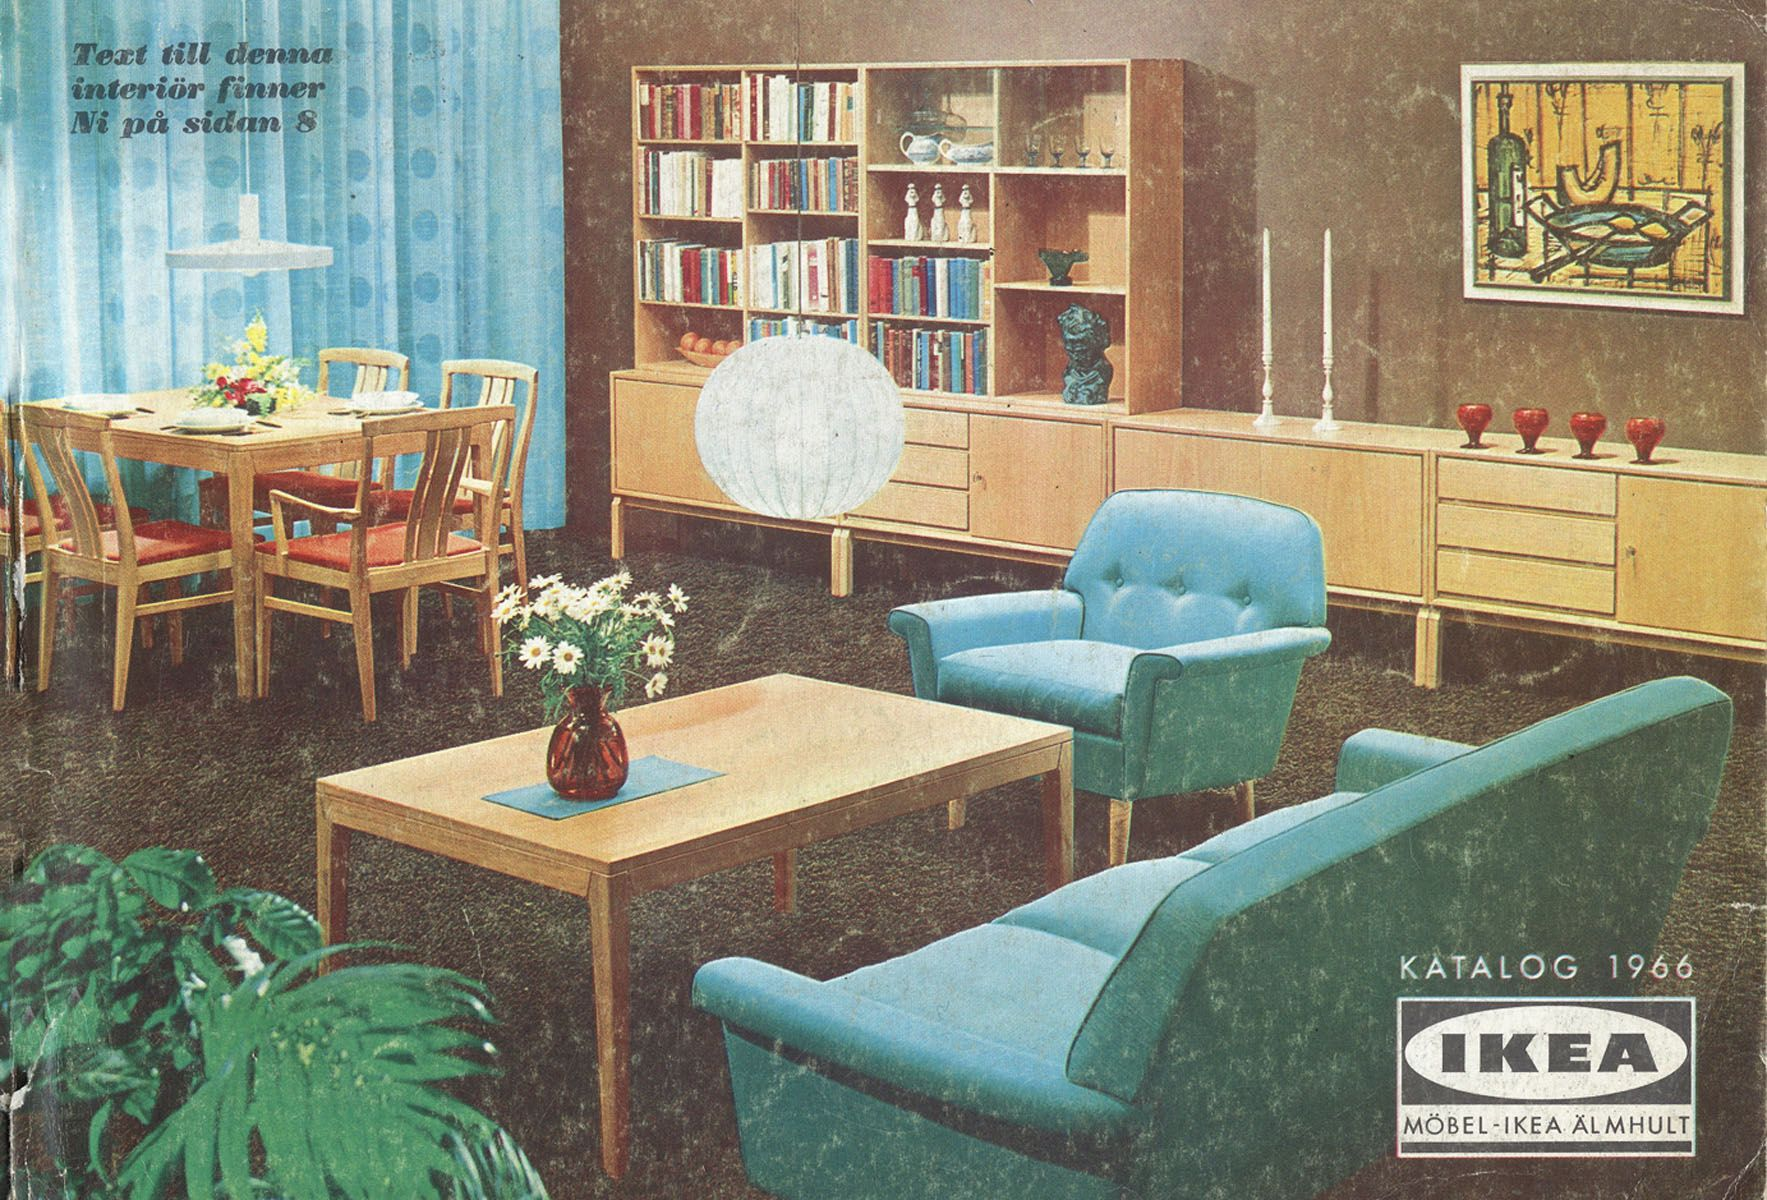 Moebel Ikea Katalog Ikea Catalog Covers From 1951 2018 Mcm Home Furniture Ads